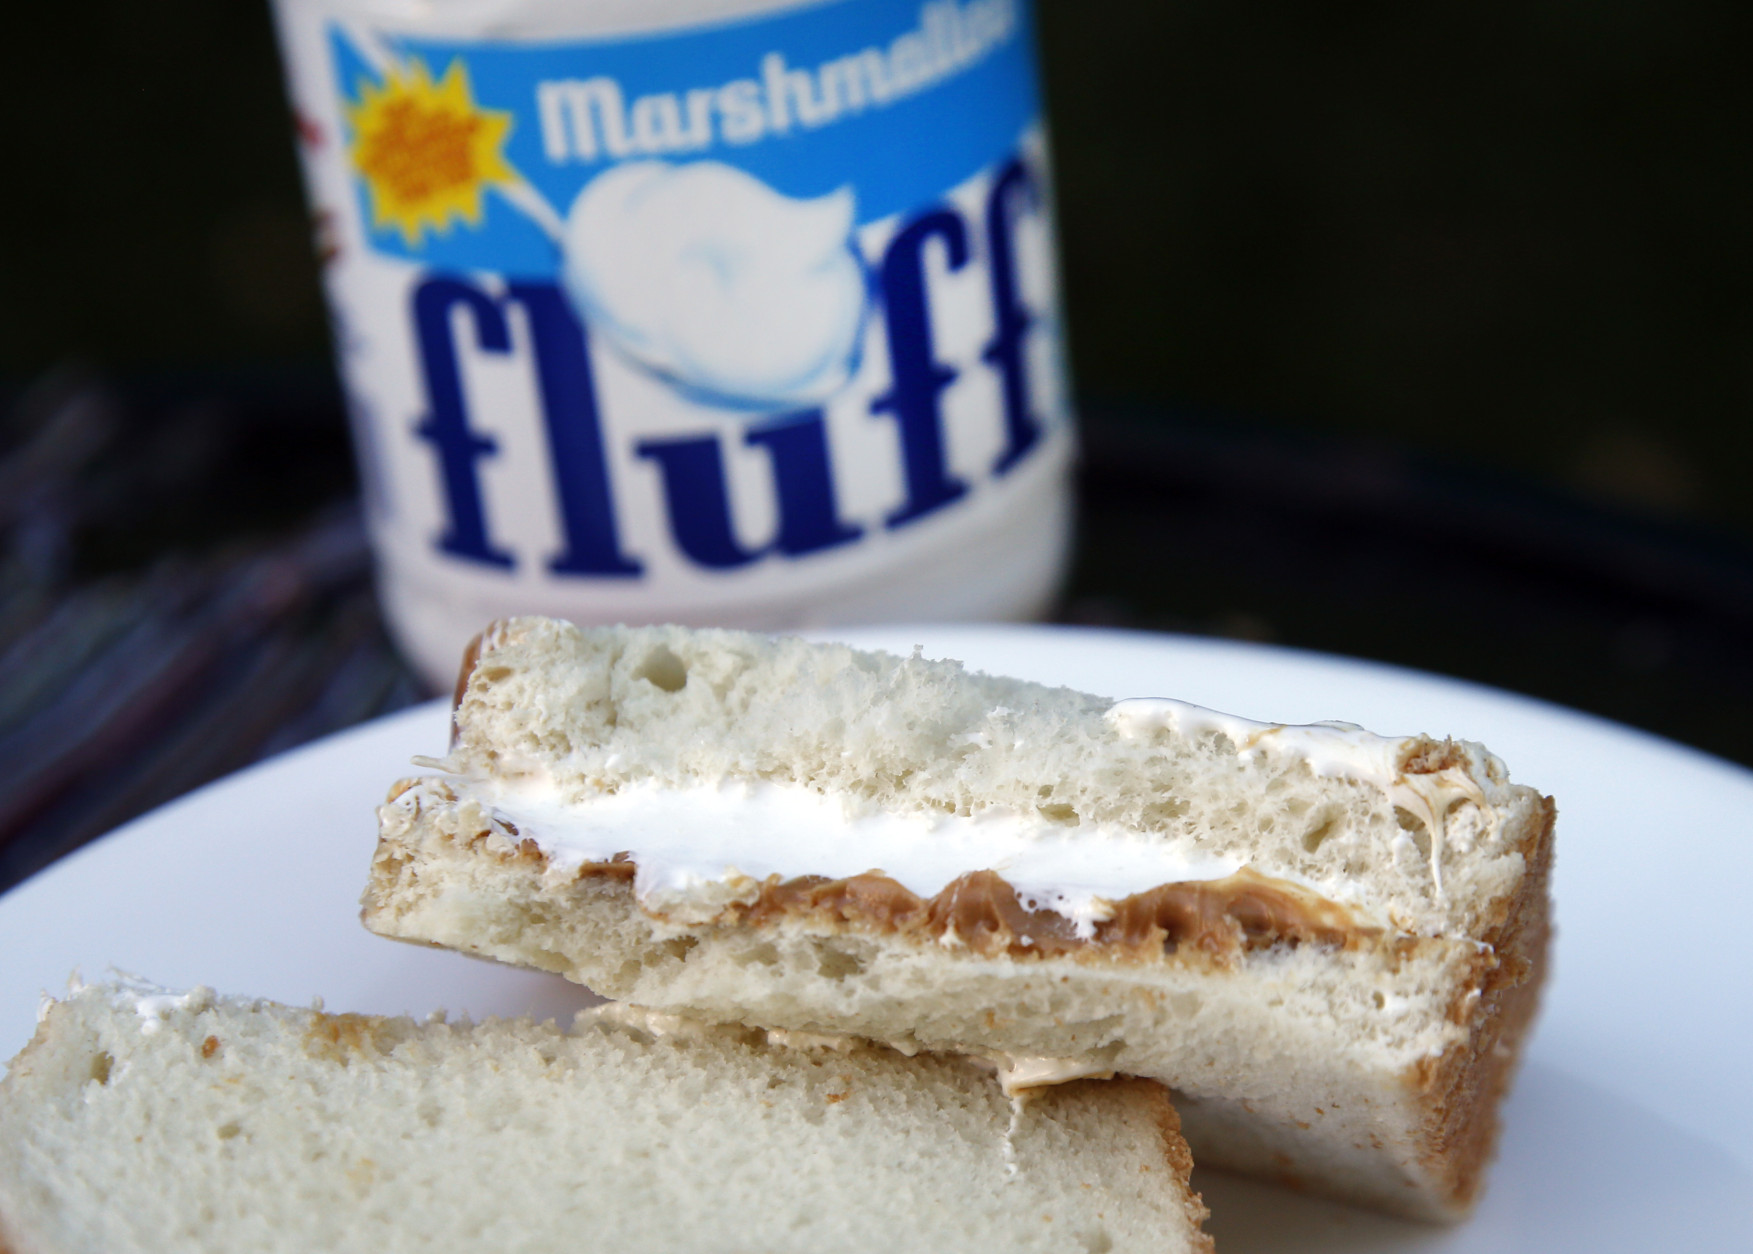 In this Sept. 27 2013 photo, a jar of Marshmallow Fluff and a Fluffernutter sandwich are displayed in North Andover, Mass. Last year, the company that makes Marshmallow Fluff sold about 8 million pounds of the white creme, and a bill to make the Fluffernutter _ peanut butter and Fluff on bread _ the official state sandwich has been reintroduced in the state legislature. (AP Photo/Elise Amendola)